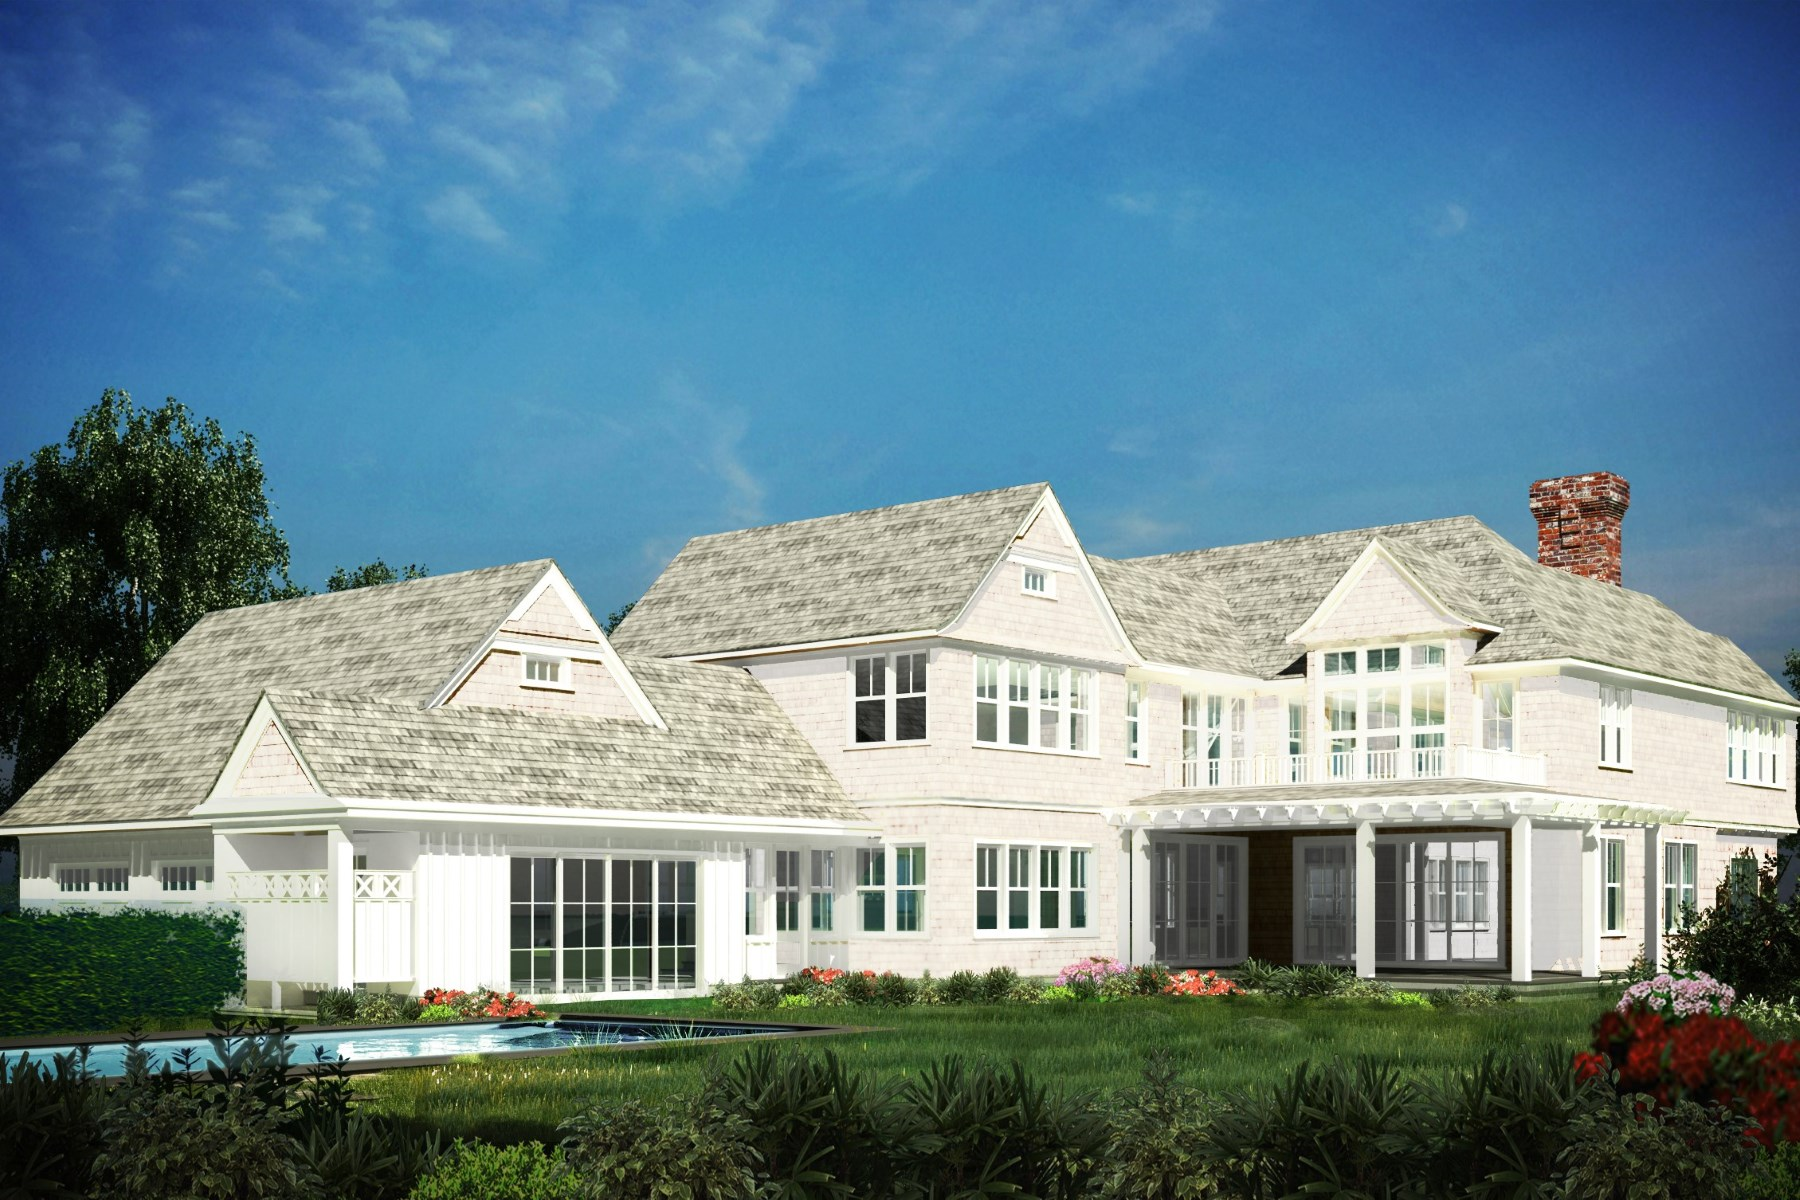 Villa per Vendita alle ore Southampton Village New Construction 20 Downs Path Southampton Estate Section, Southampton, New York, 11968 Stati Uniti